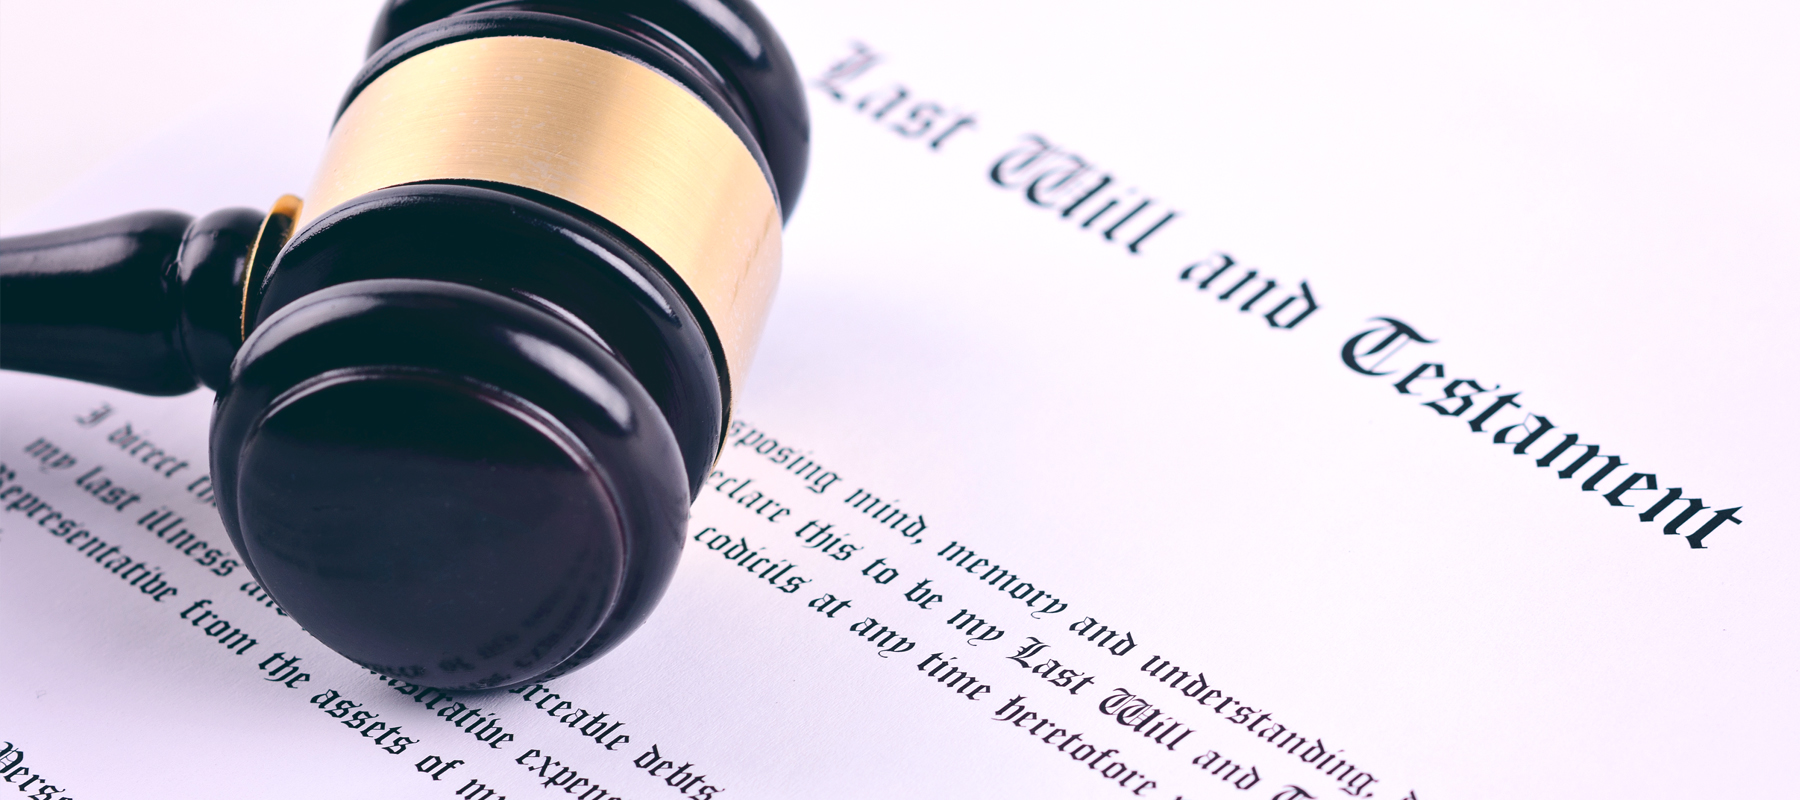 Gavel on legal documents